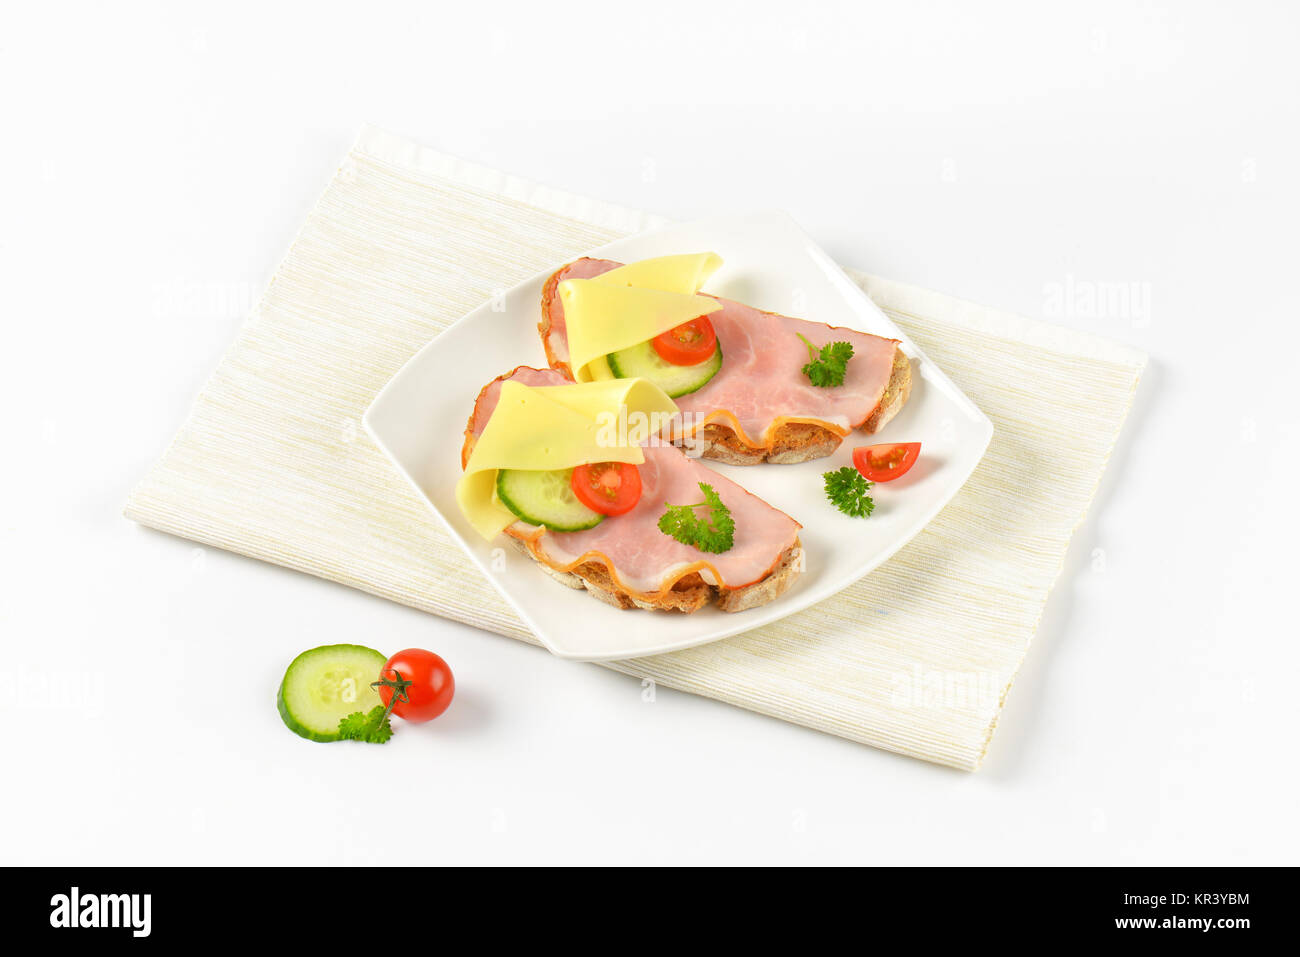 open faced sandwiches - Stock Image